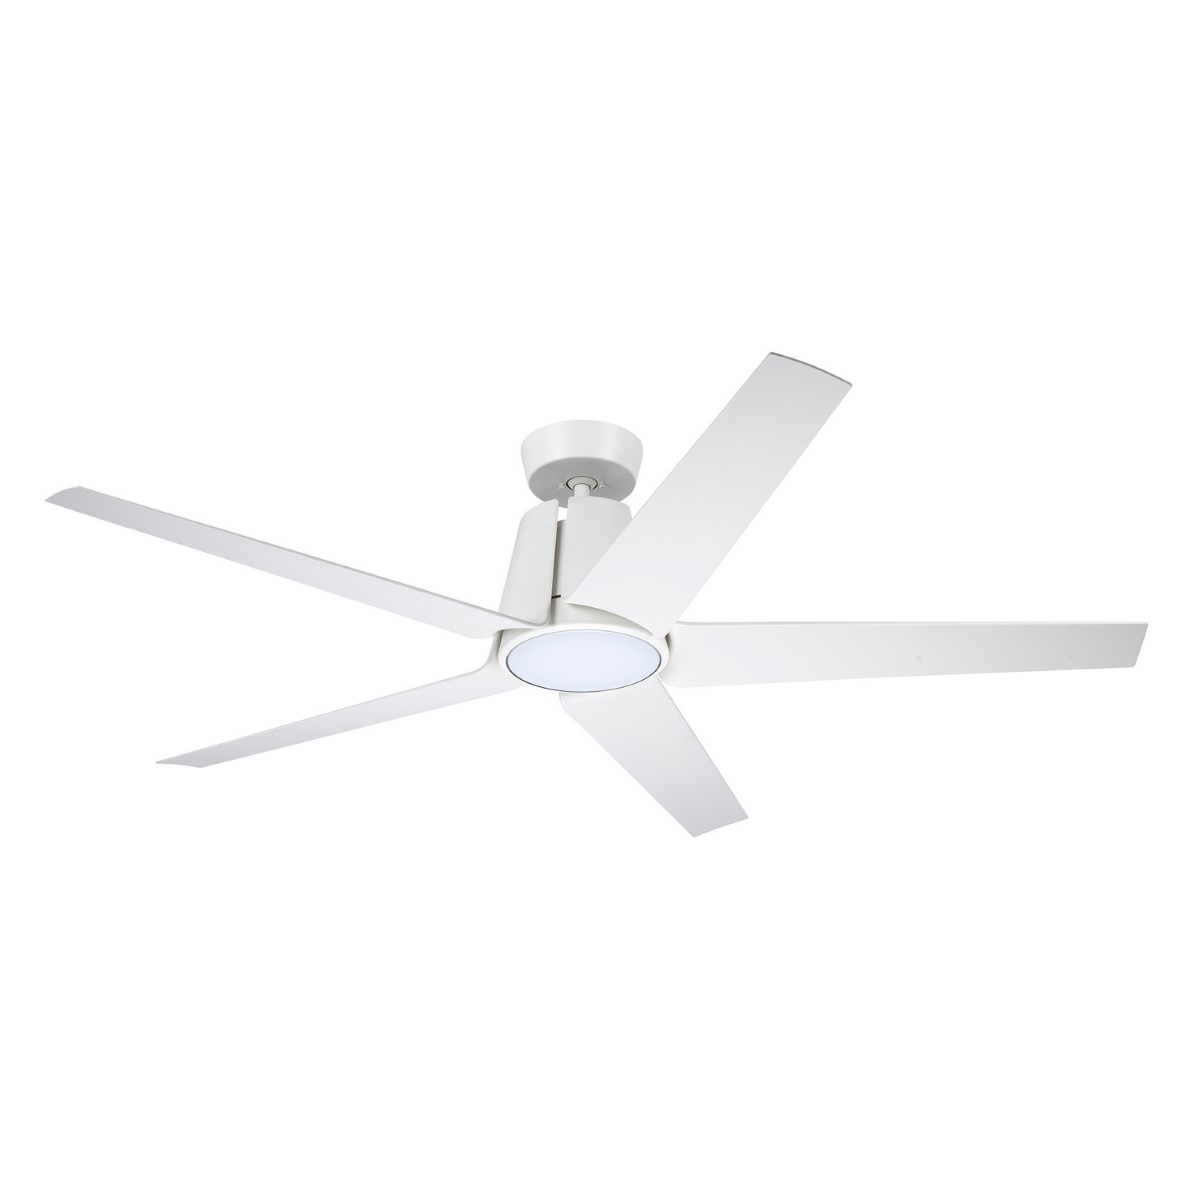 Emerson Floret Eco Satin White Ceiling Fan